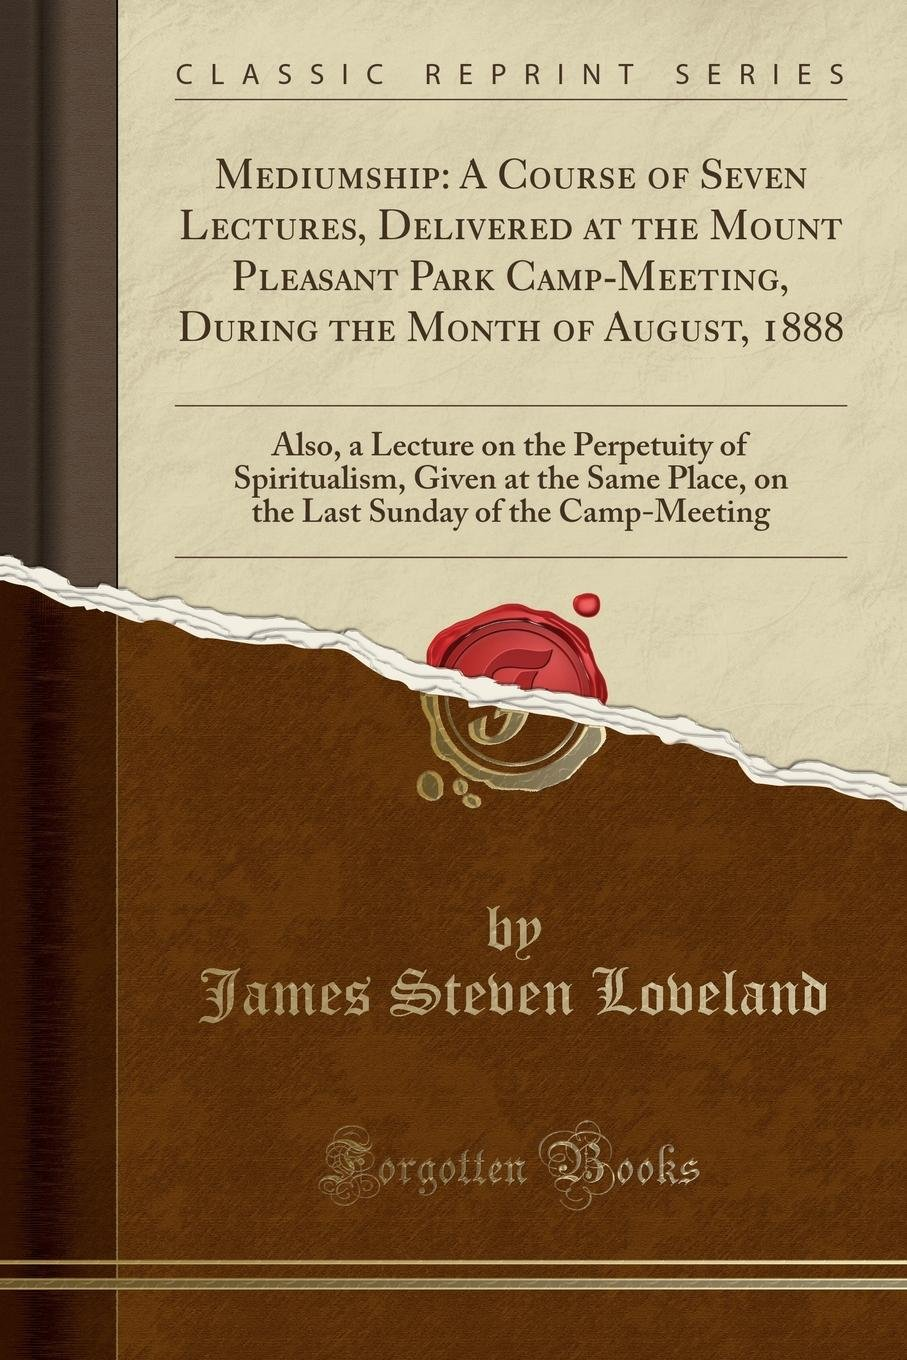 Mediumship: A Course of Seven Lectures, Delivered at the Mount Pleasant Park Camp-Meeting, During the Month of August, 1888: Also, a Lecture on the ... Place, on the Last Sunday of the Camp-Meeting PDF